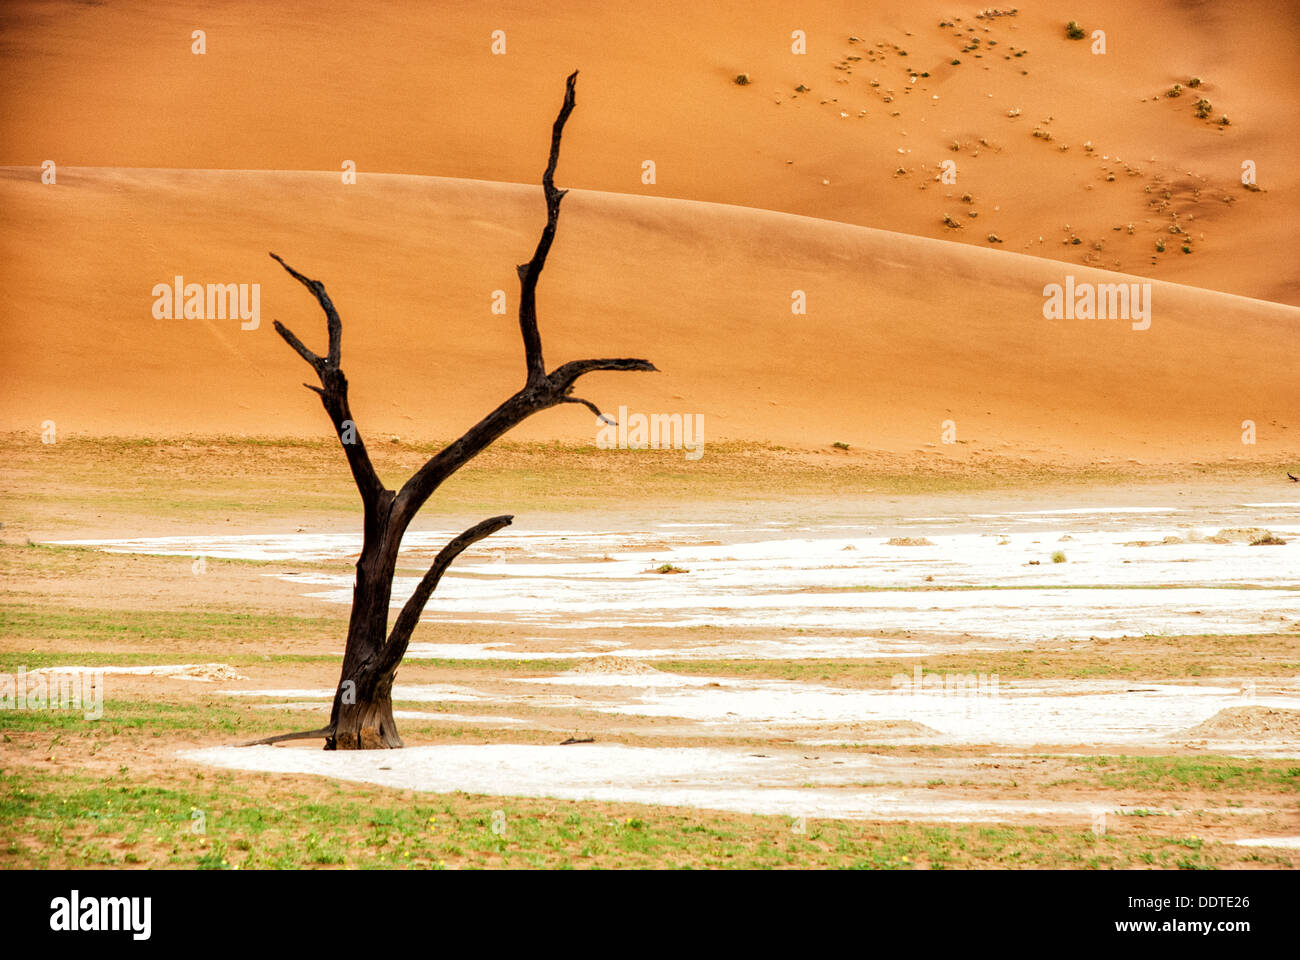 Dead Camelthorn Tree, Acacia erioloba, in the salt pan of Dead Vlei, Namib-Naukluft National Park, Sossusvlei, Namibia, Stock Photo